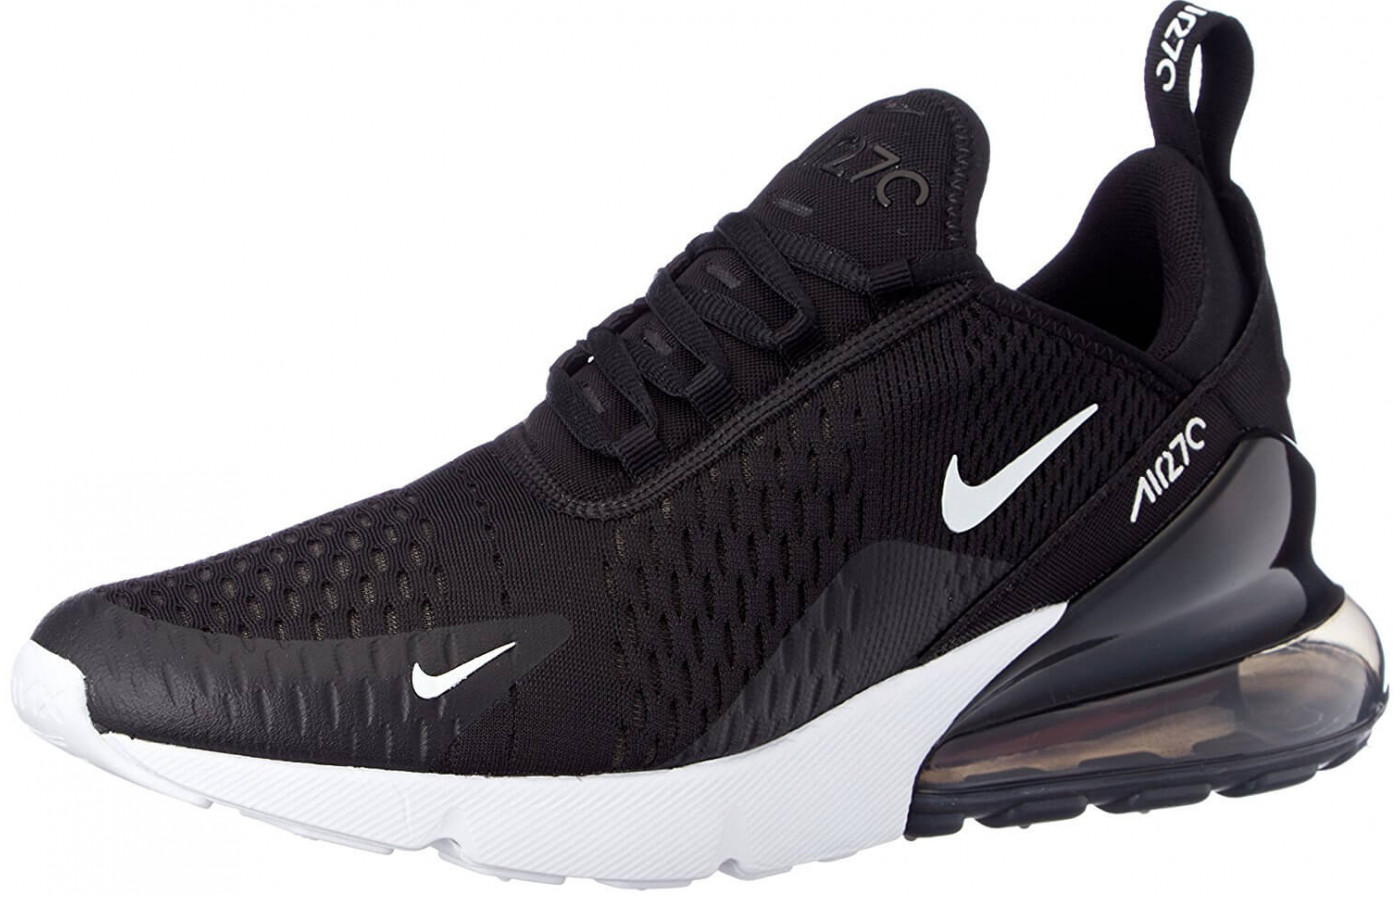 promo code 4aef1 23e76 Nike Air Max 270. Mesh upper and 270 degrees of Air ...